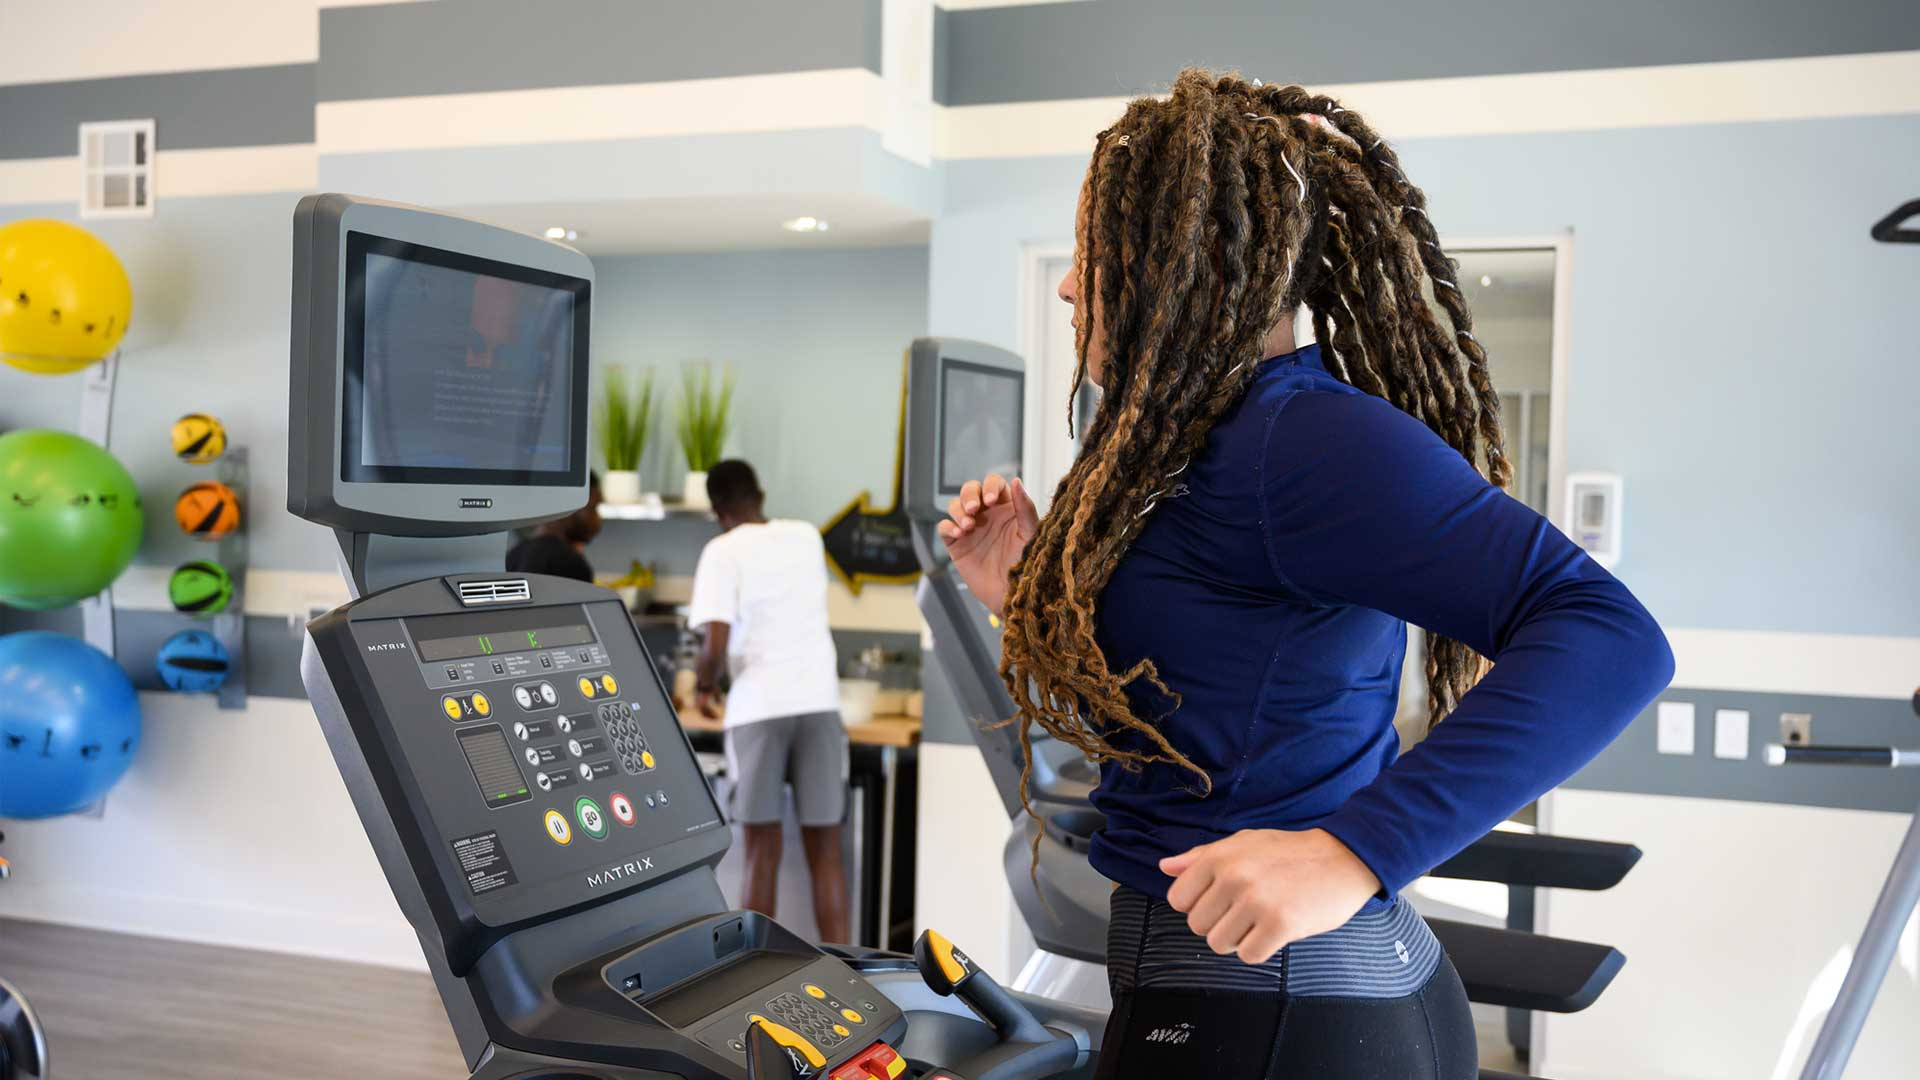 Fitness center treadmills